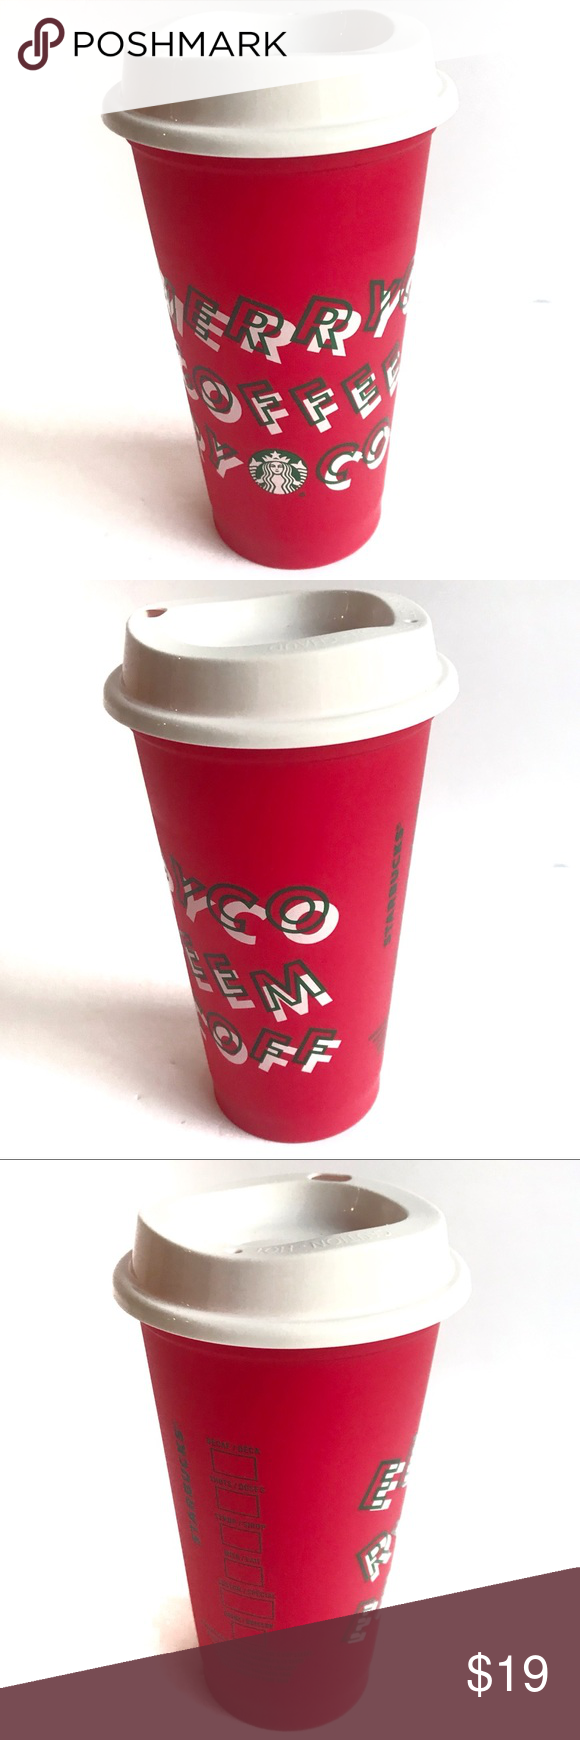 Starbucks Limited Edition Red Cup Holiday 2019 NWT (With